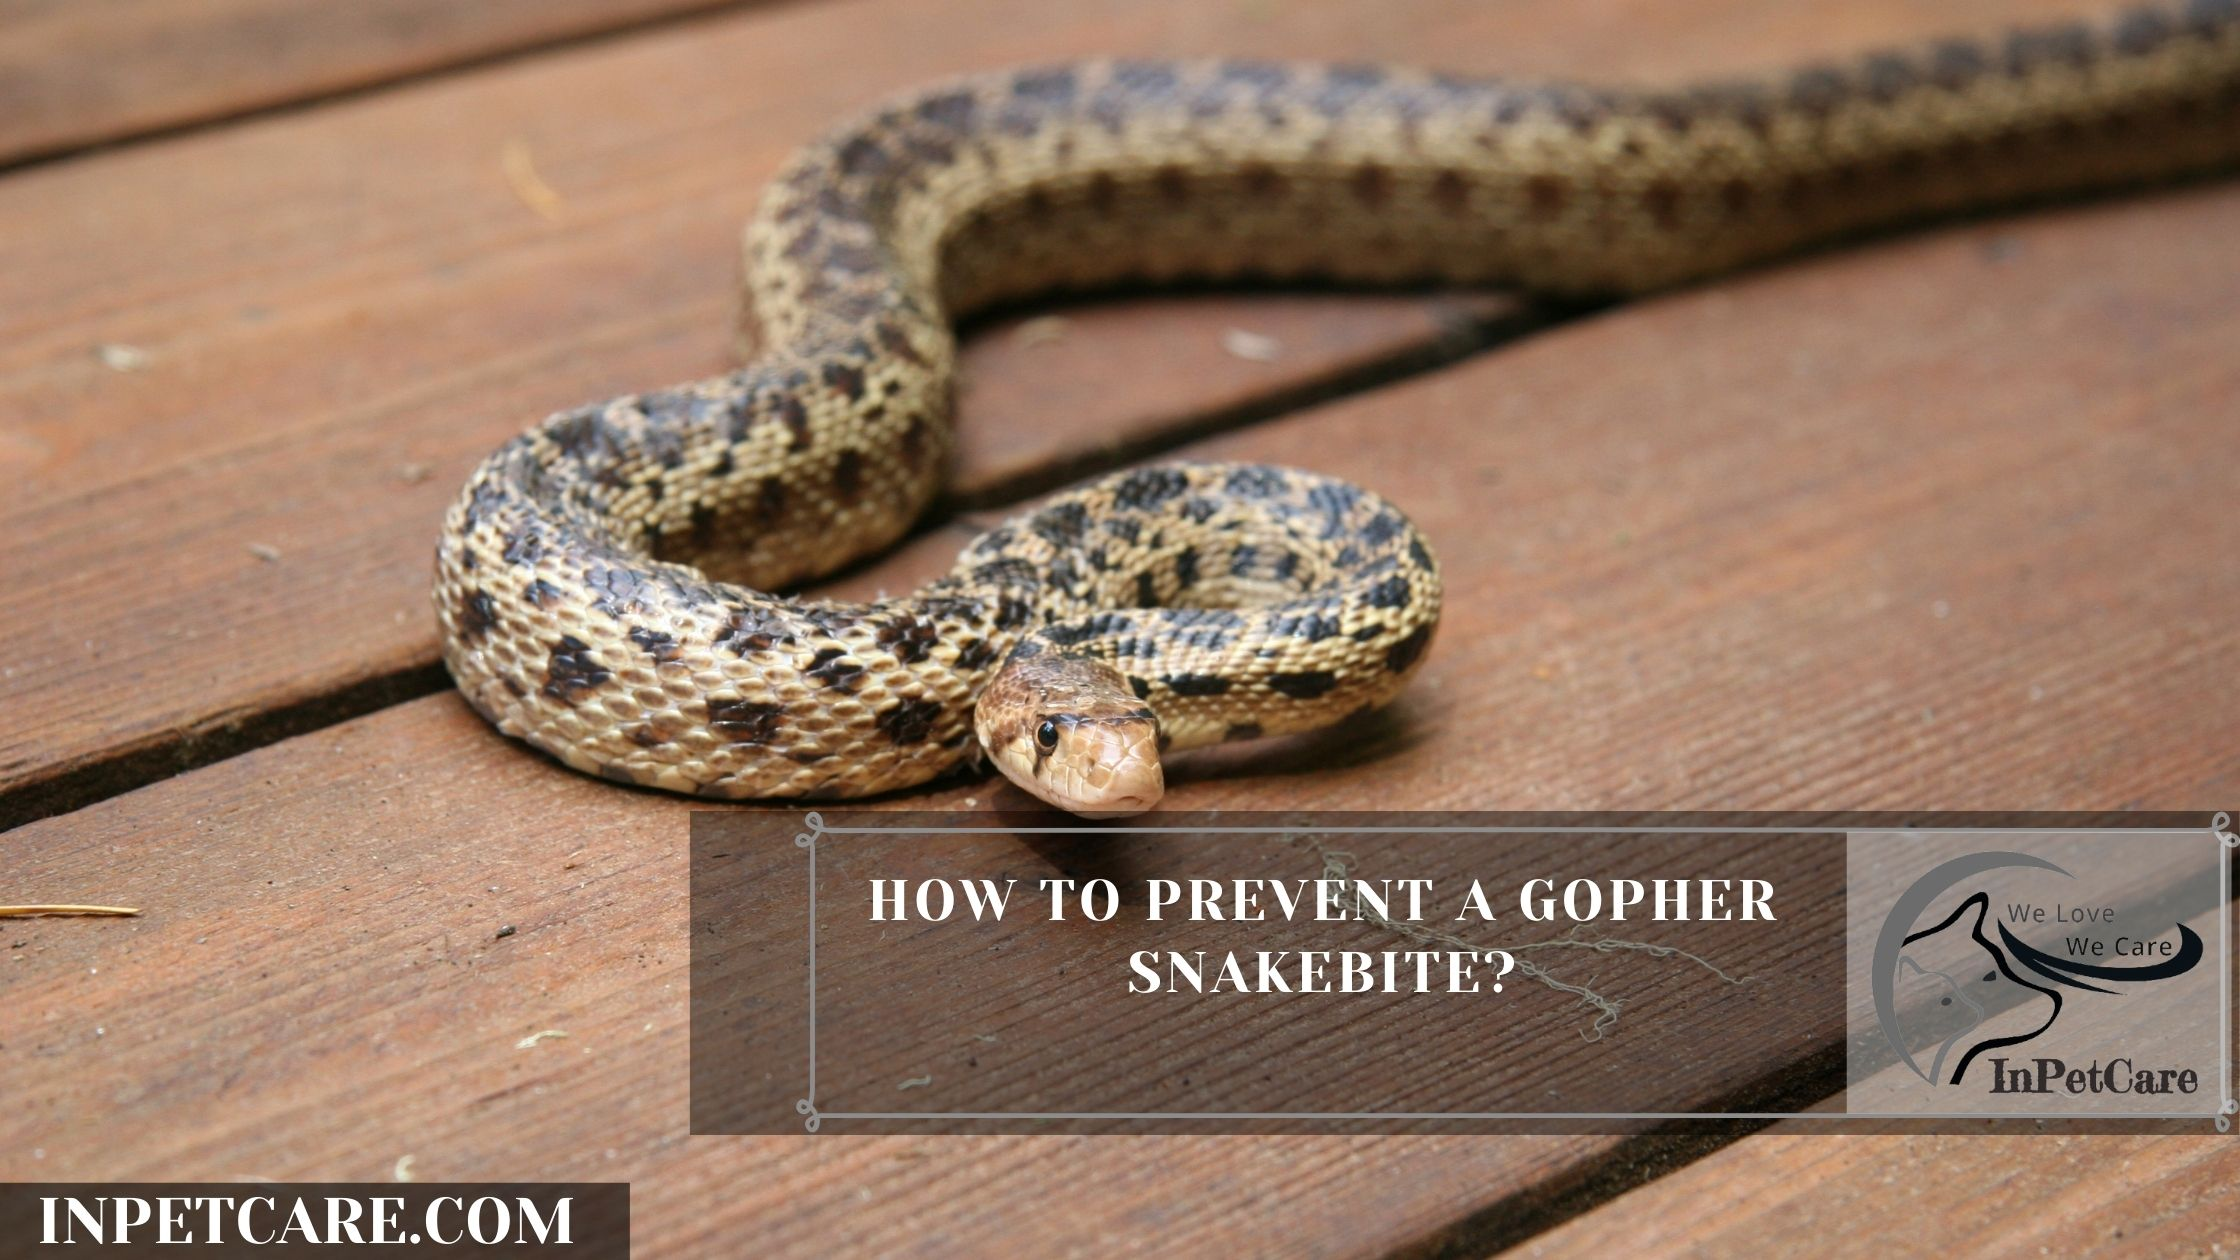 How To Prevent A Gopher Snakebite?